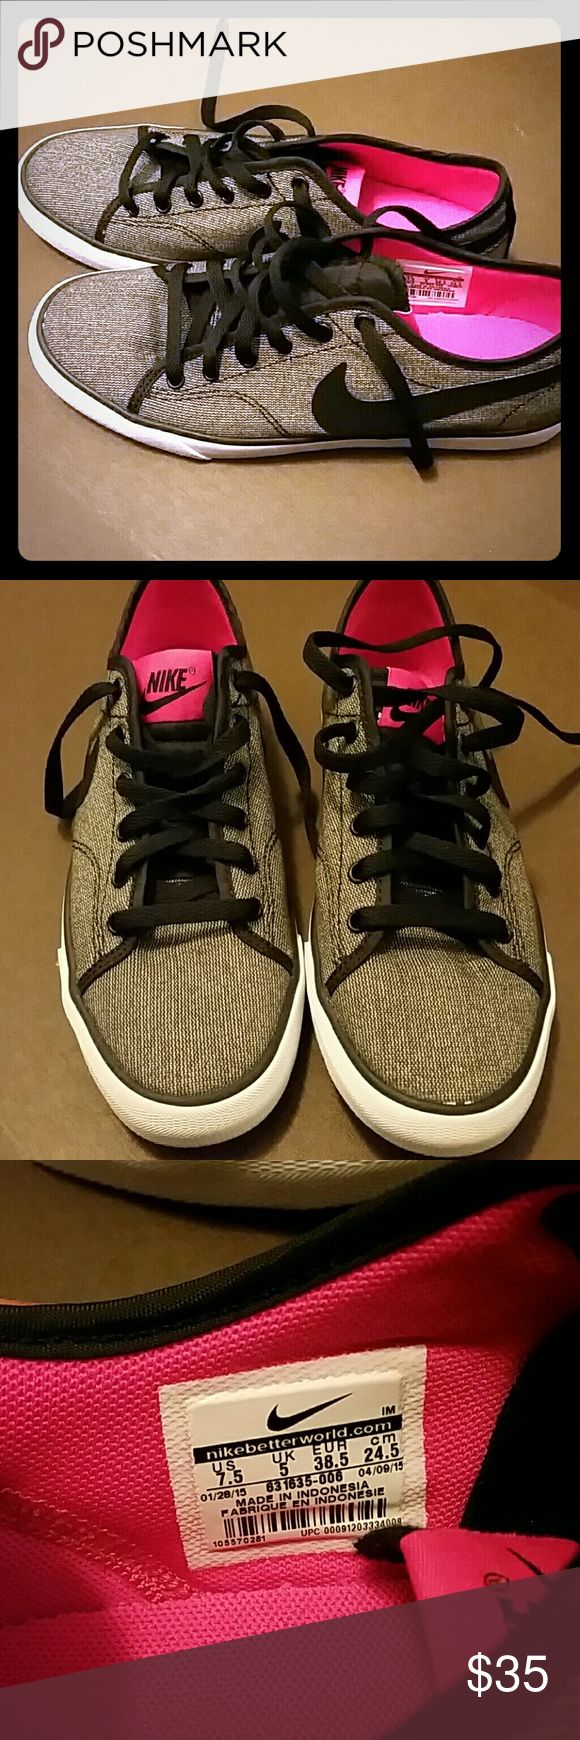 Nike Primo Court Canvas sneakers Nike canvas sneakers, New in box, never worn. Grey, black and pink with white soles Nike Shoes Sneakers